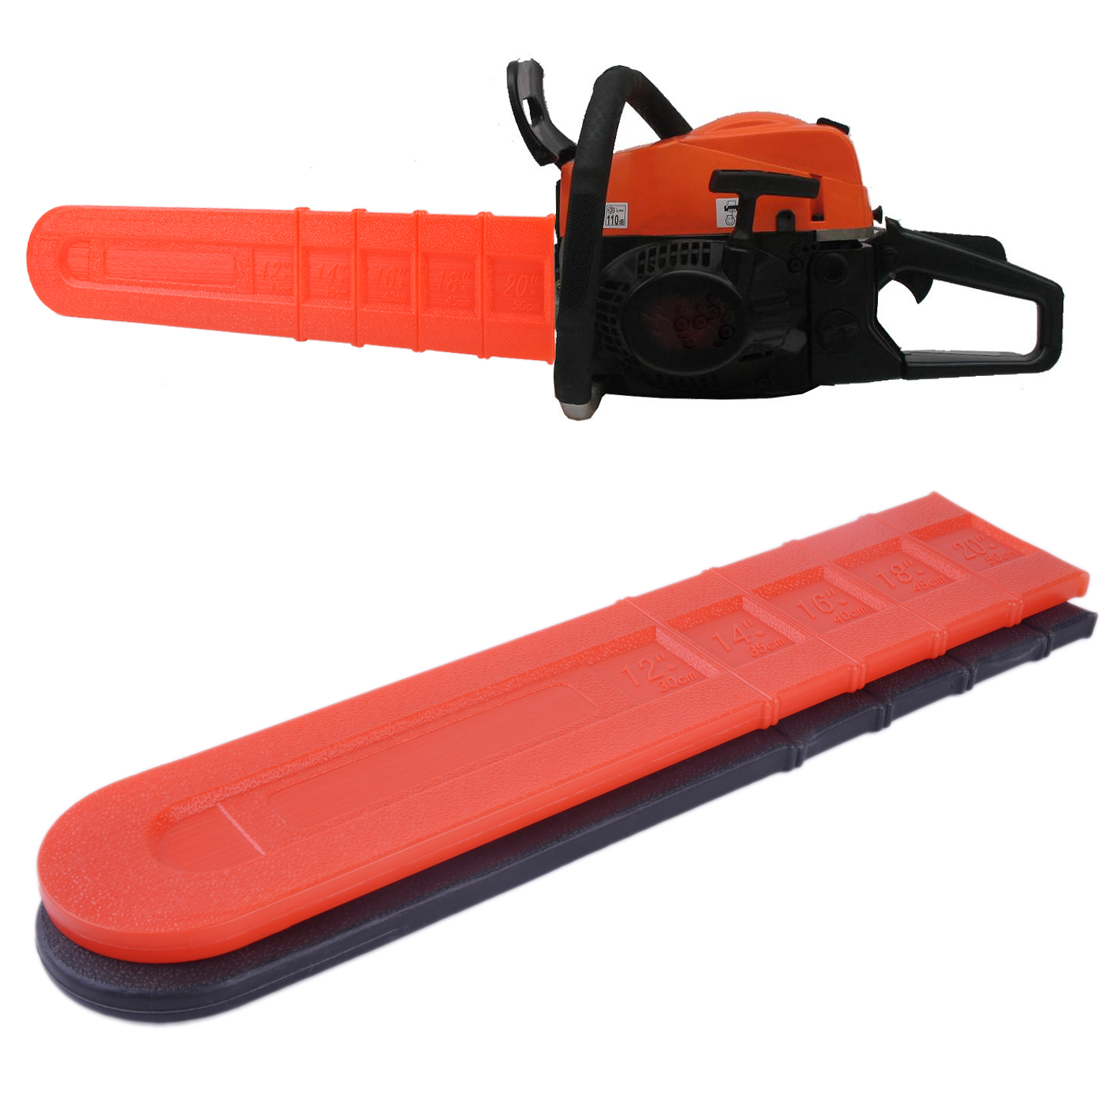 12/'/' 16/'/' 18/'/' Chainsaw Bar Cover Scabbard Protector Universal Guide Plate MR